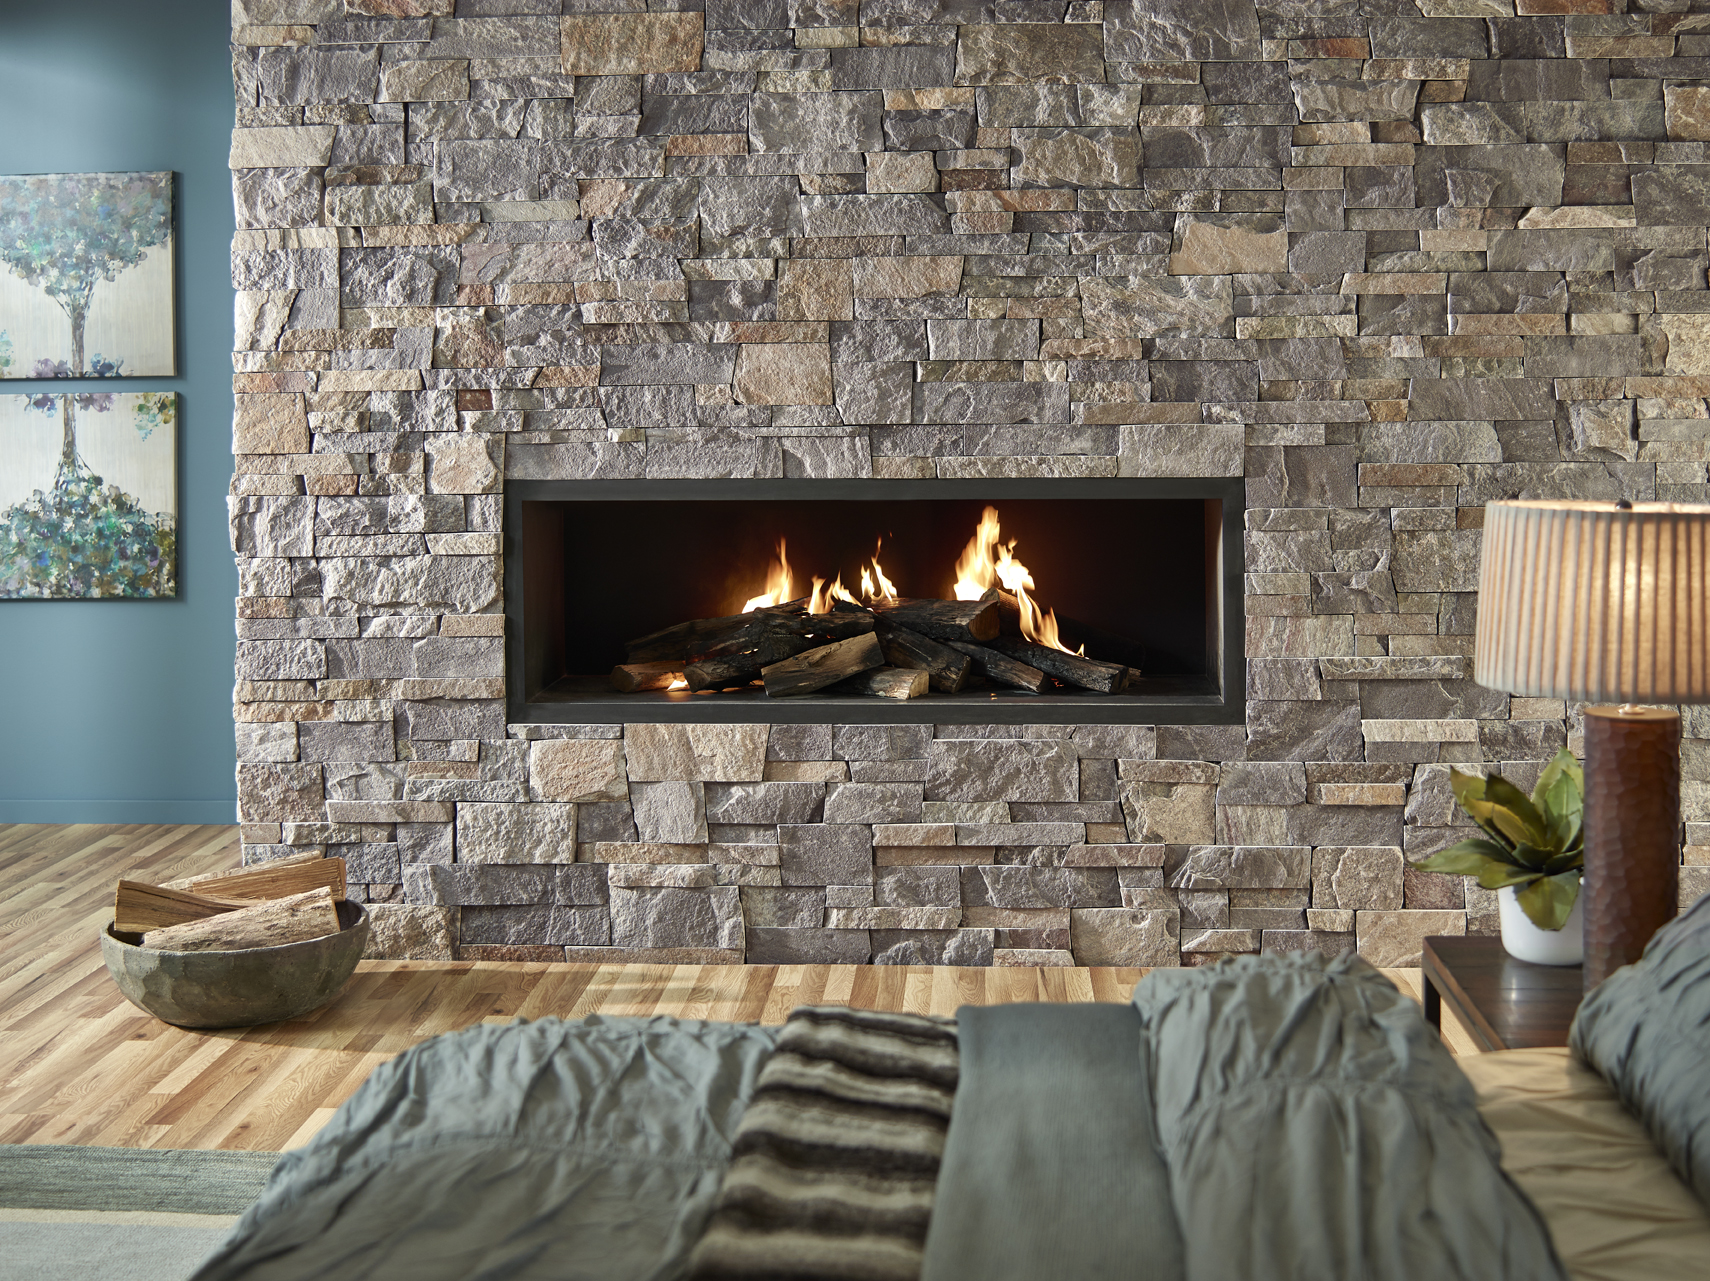 Eldorado Stone Veneer Fireplace 246ledge Is Eldorado Stone S Latest Modular Design Jlc Online